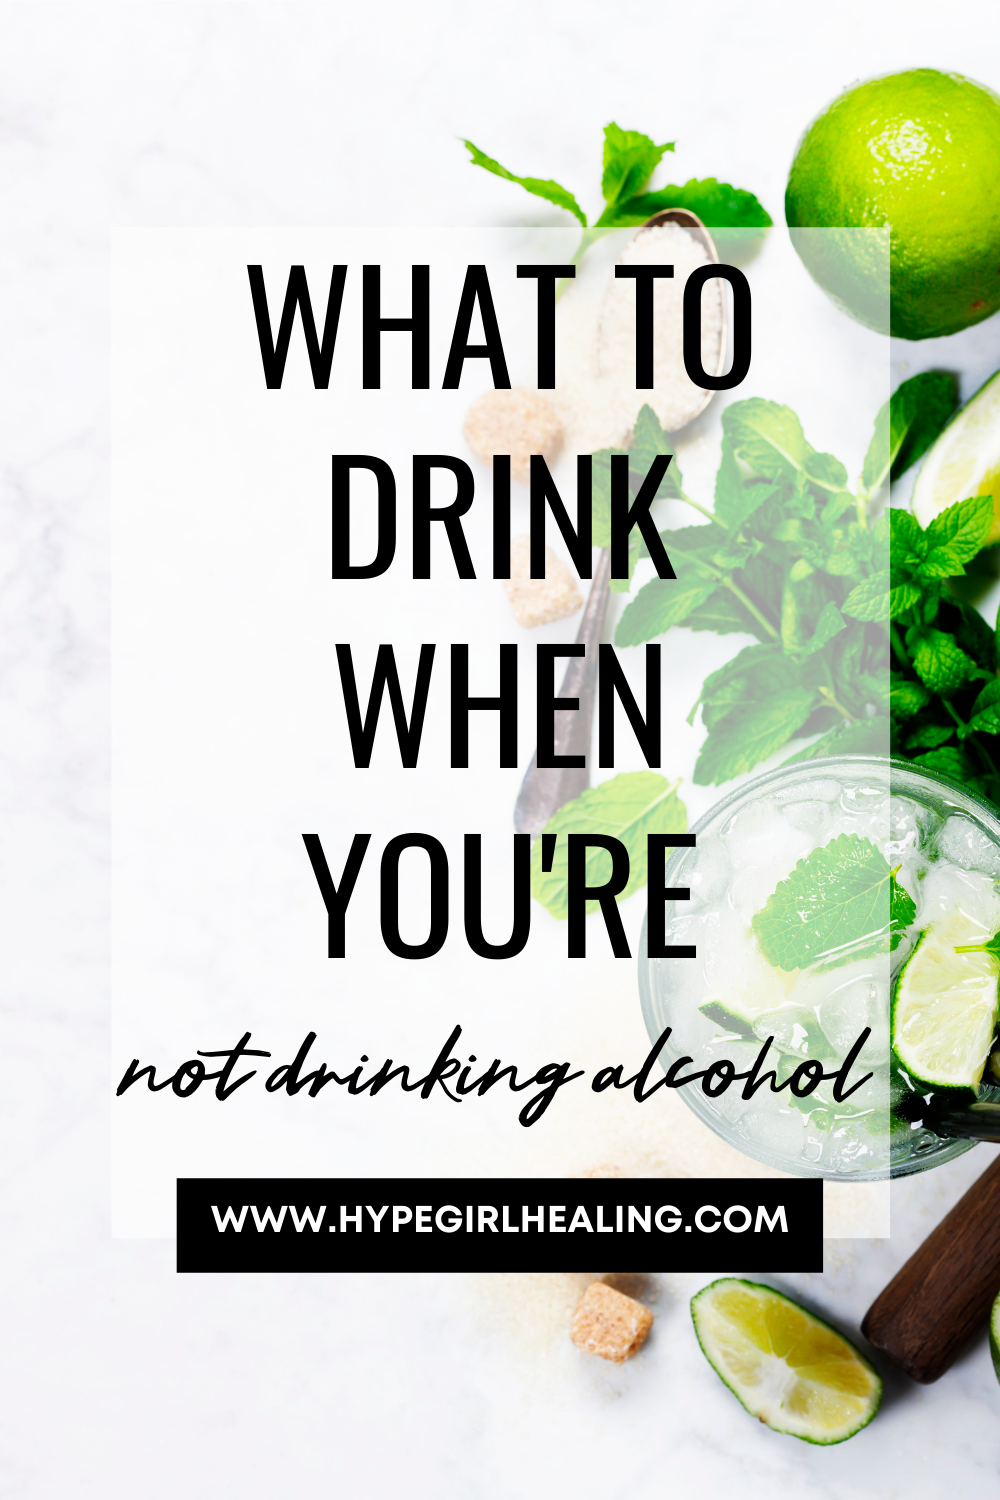 Limes and mint for mocktail drink ideas for sober living